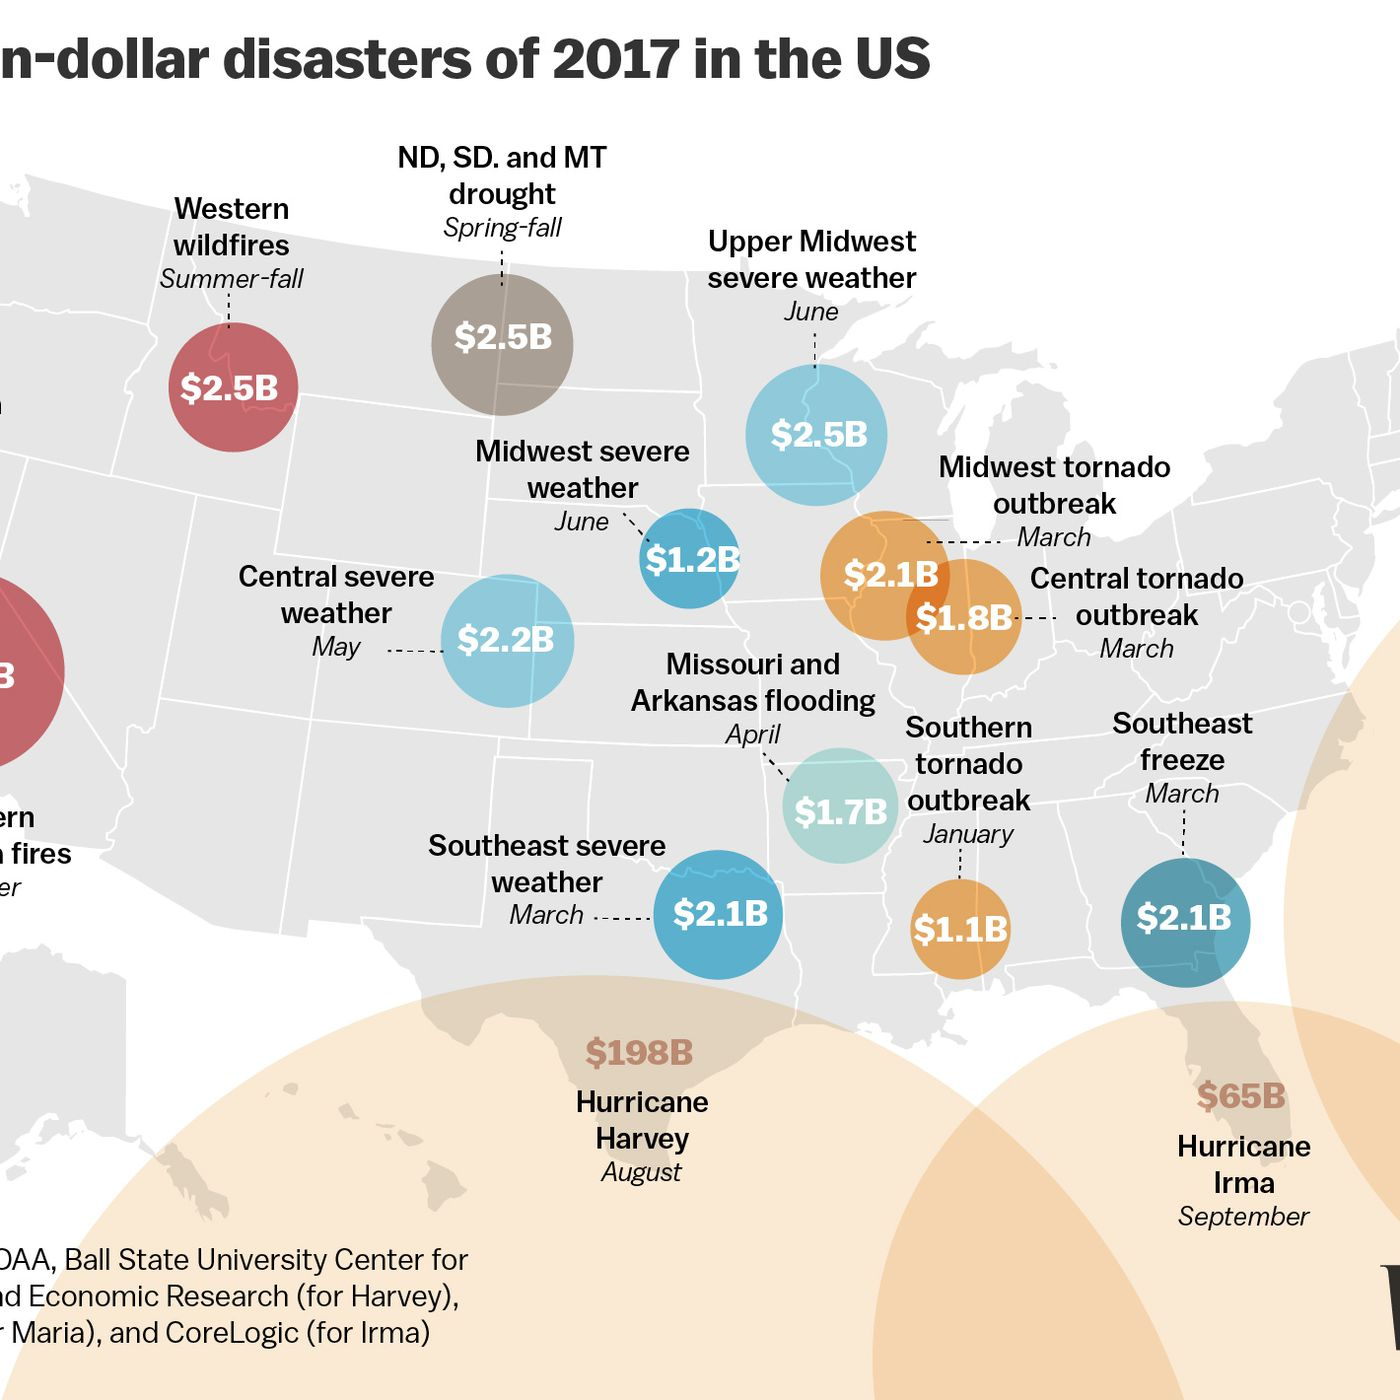 Disasters 2017 The Devastating Hurricanes Fires Floods And Heat Brief History Exploded Part Diagrams 28 Parts 2 Pages Disassembly Explained Vox